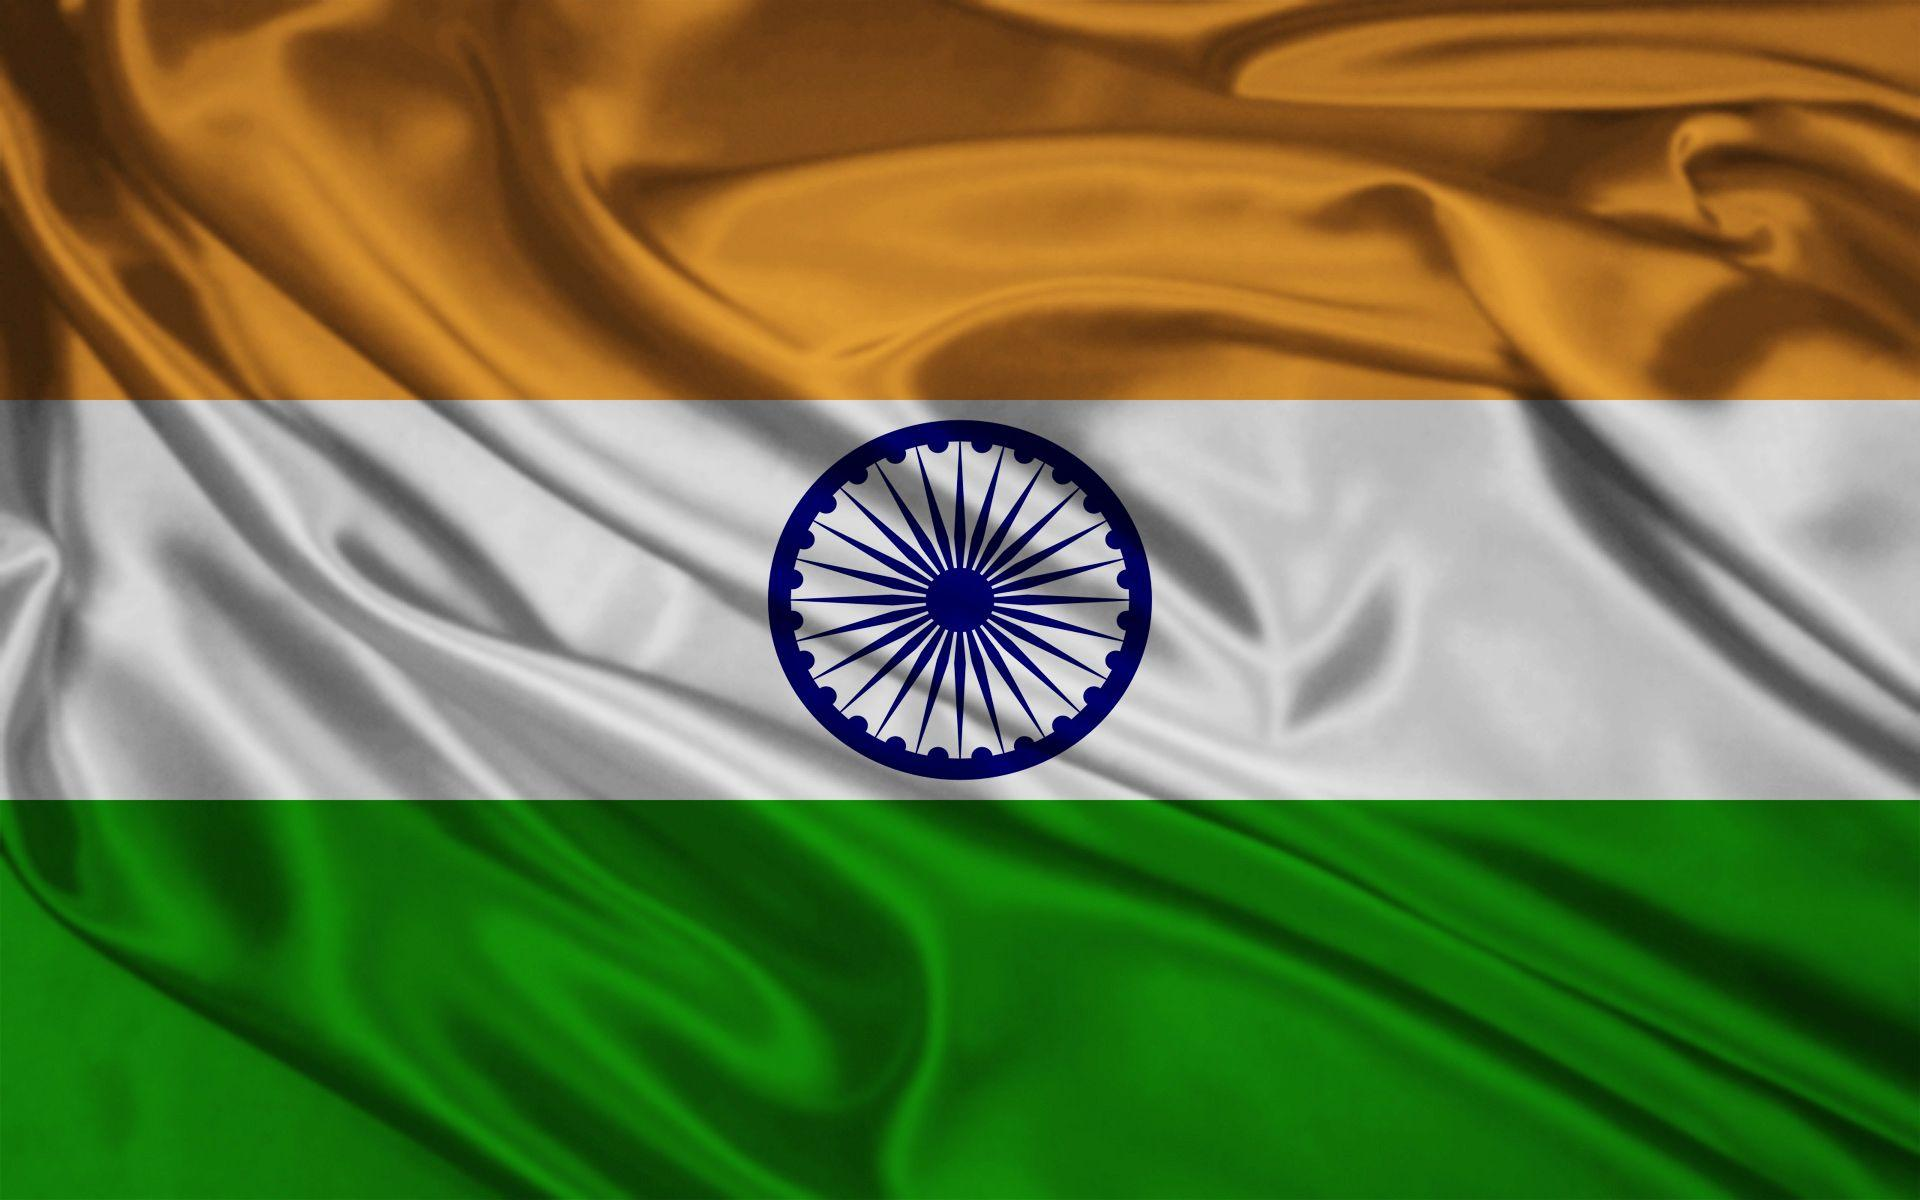 Indian Flag 4k Wallpaper: India Wallpapers Desktop